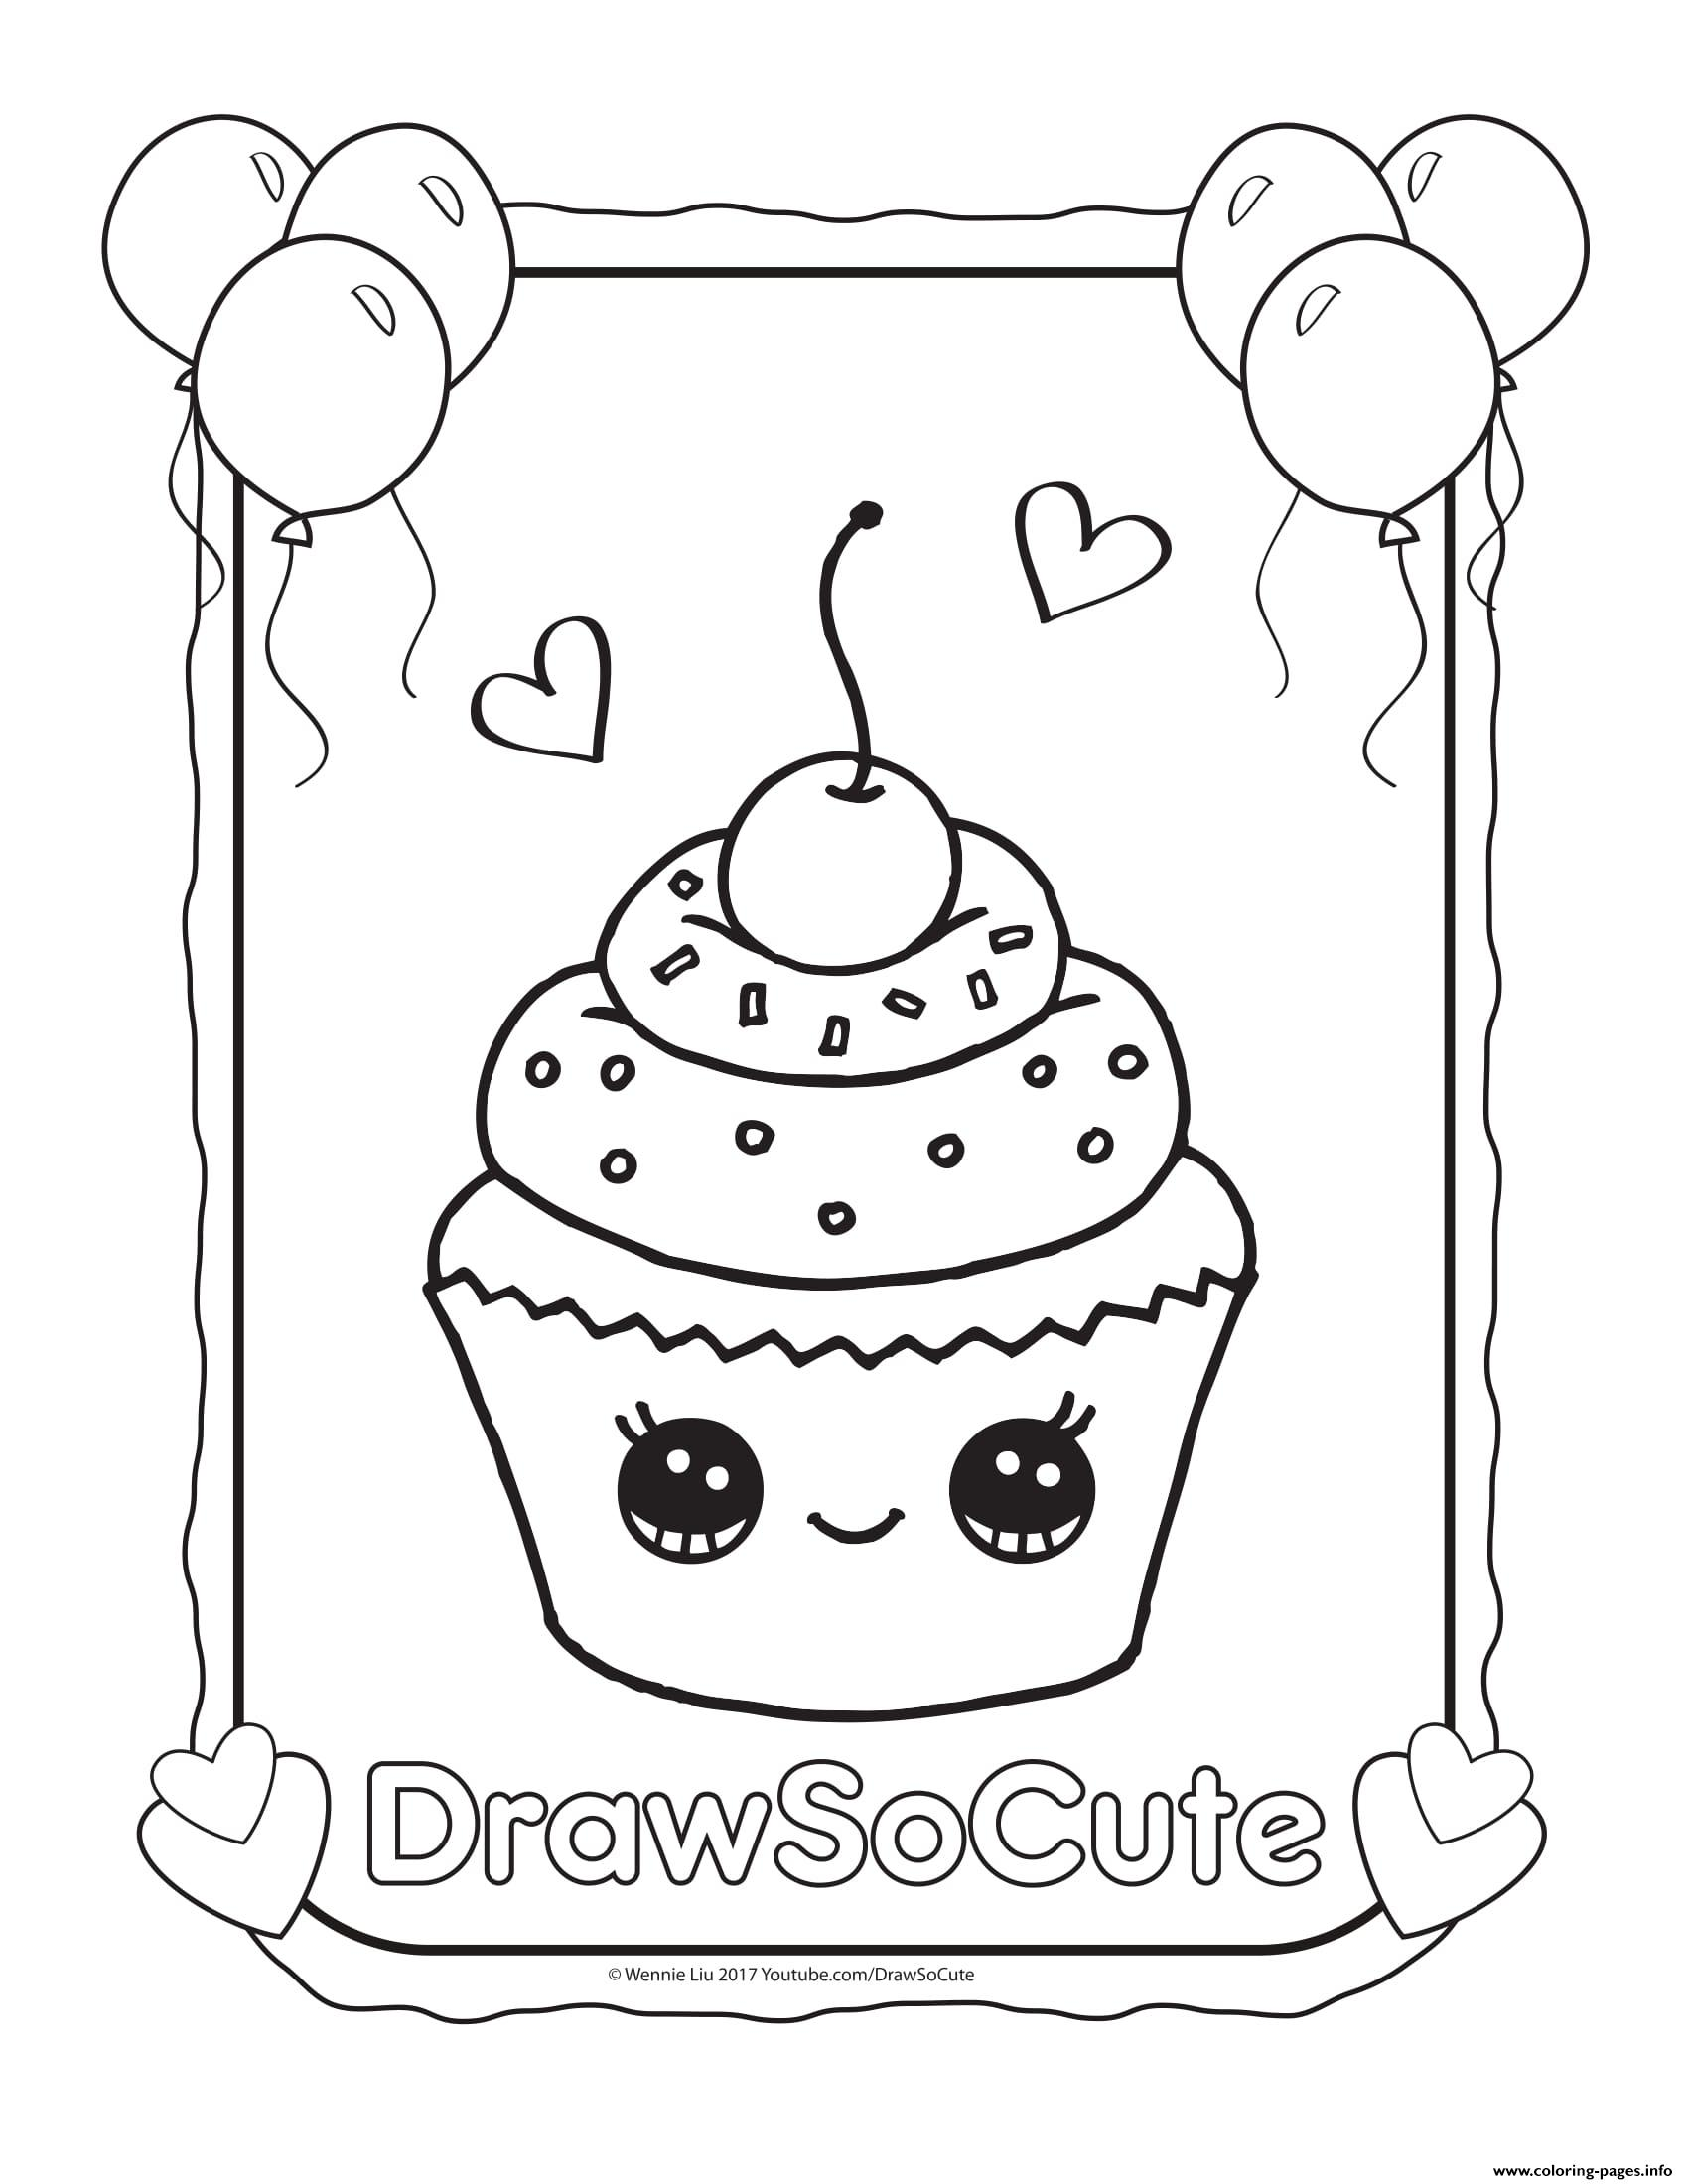 Cupcake draw so cute coloring pages printable for Cute coloring book pages